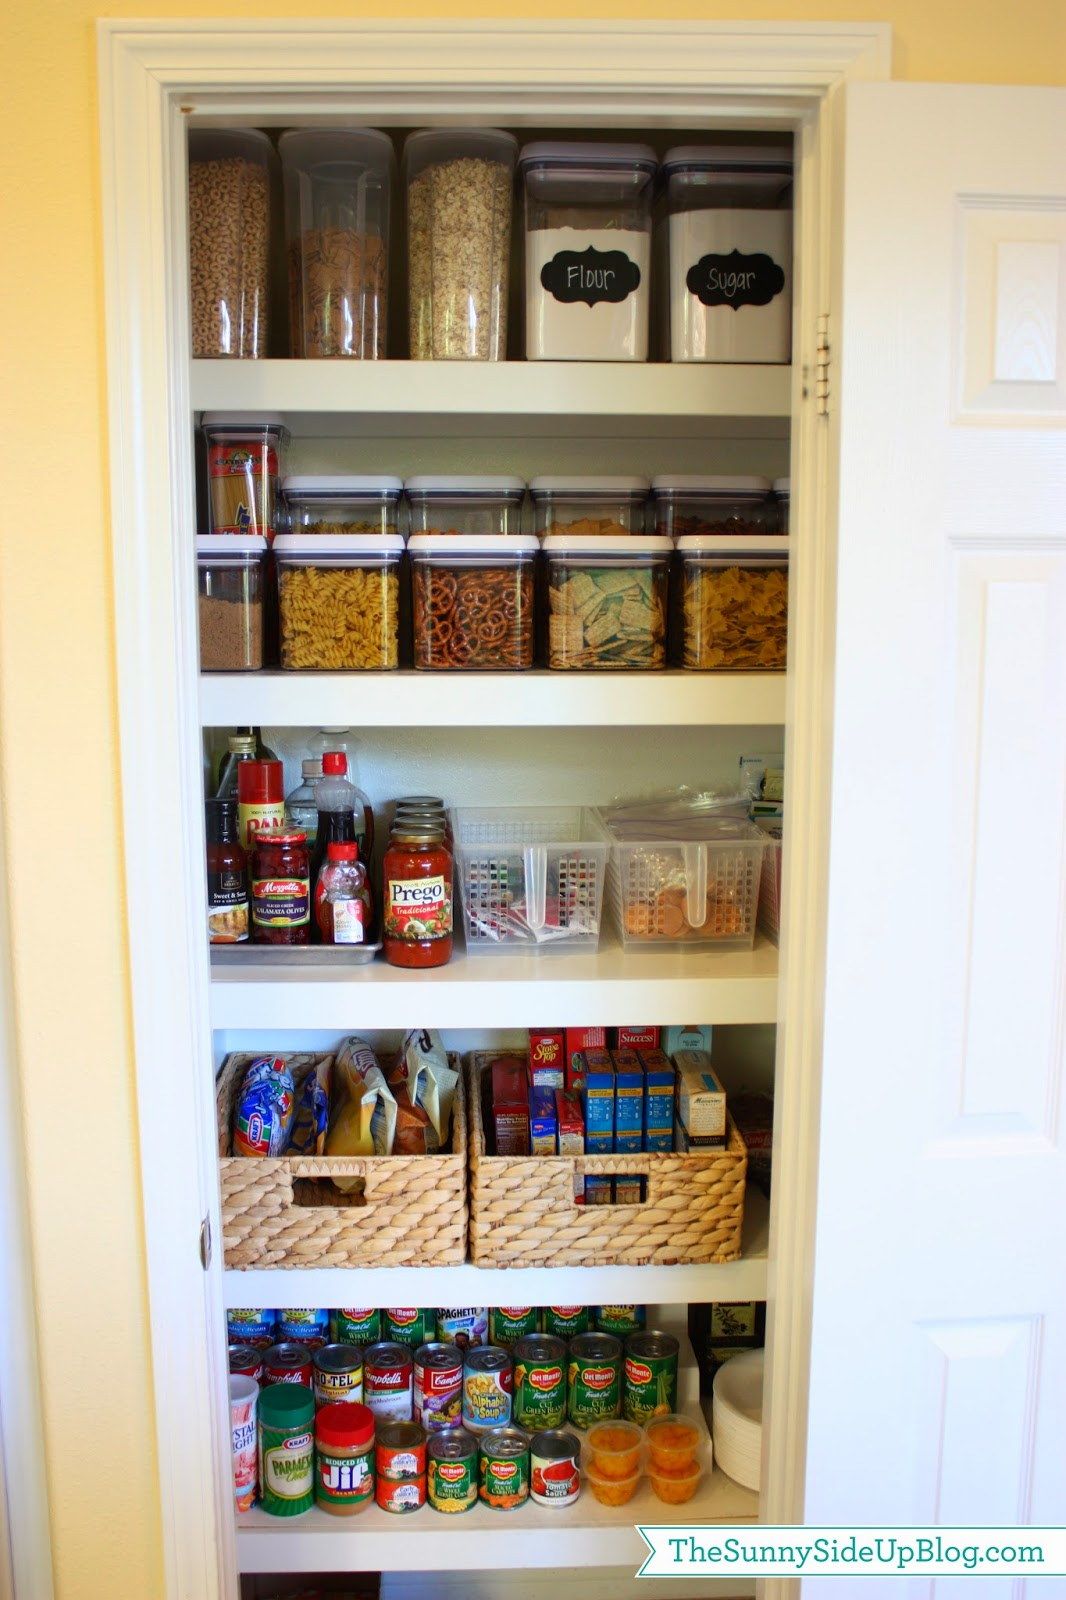 For Organizing Kitchen Pantry Pantry Organization The Next Level The Sunny Side Up Blog